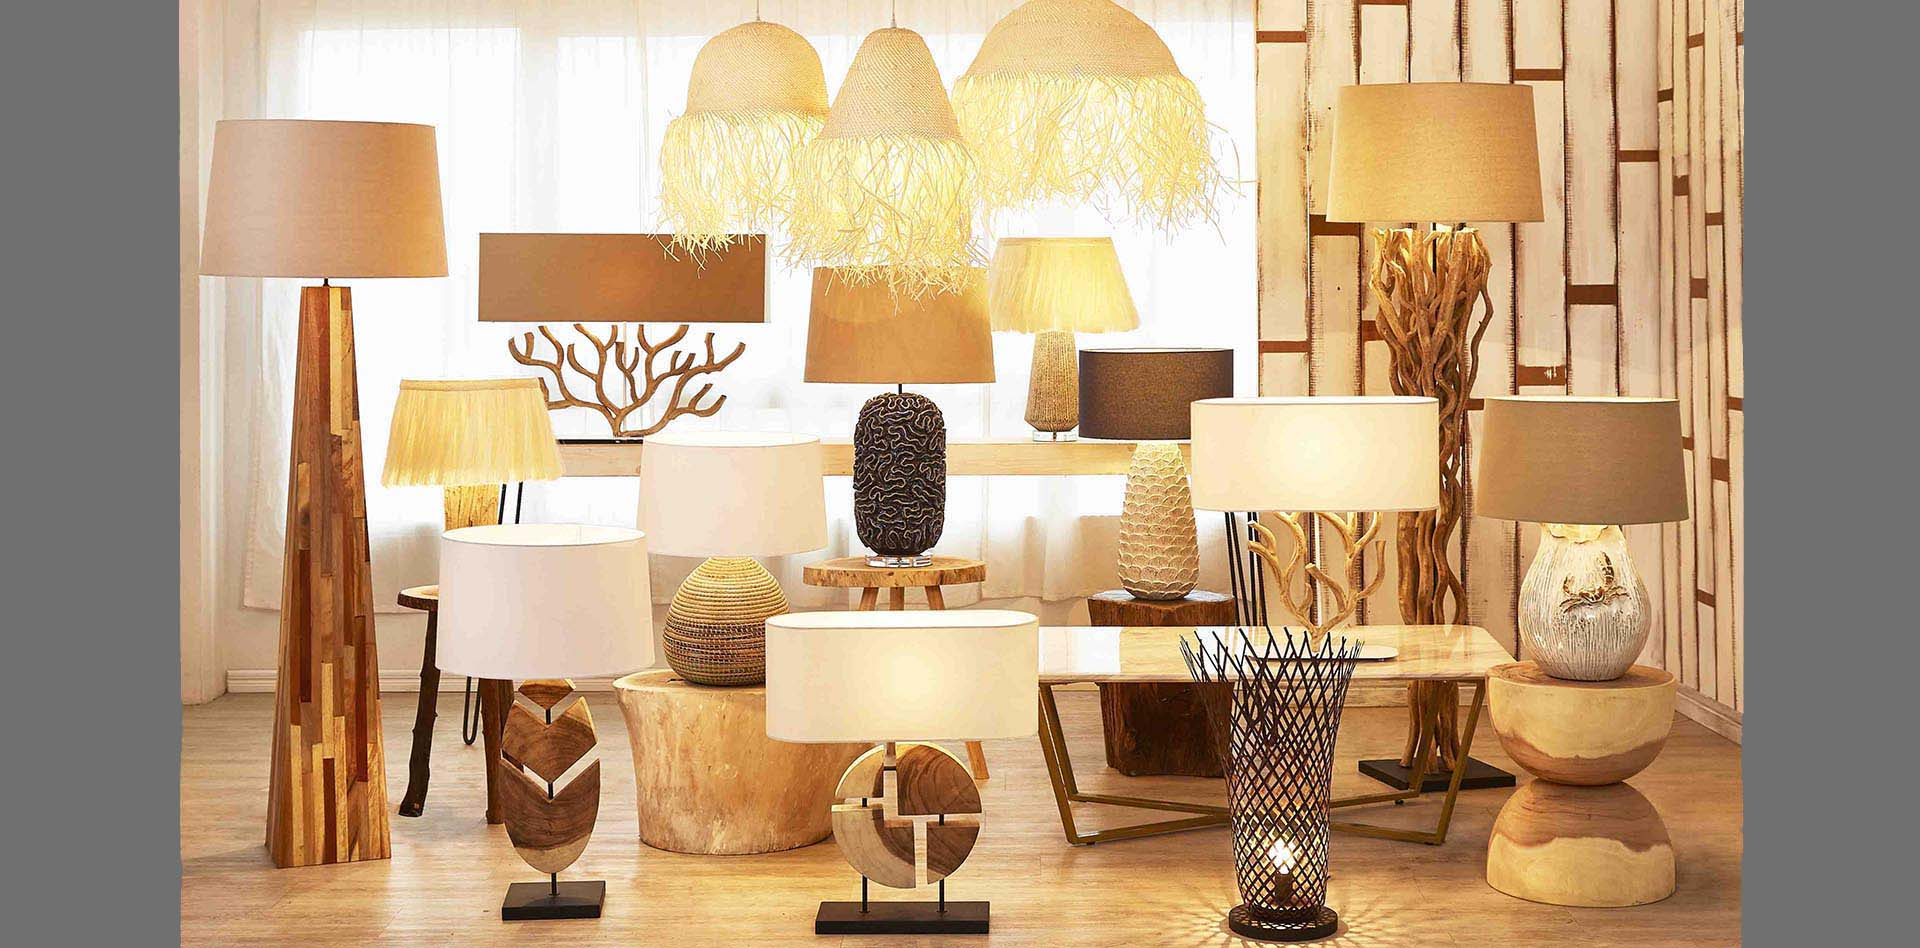 Driftwood Lamps | Mother of Pearl Lighting | Handmade Ceramic Lamps gallery image #1